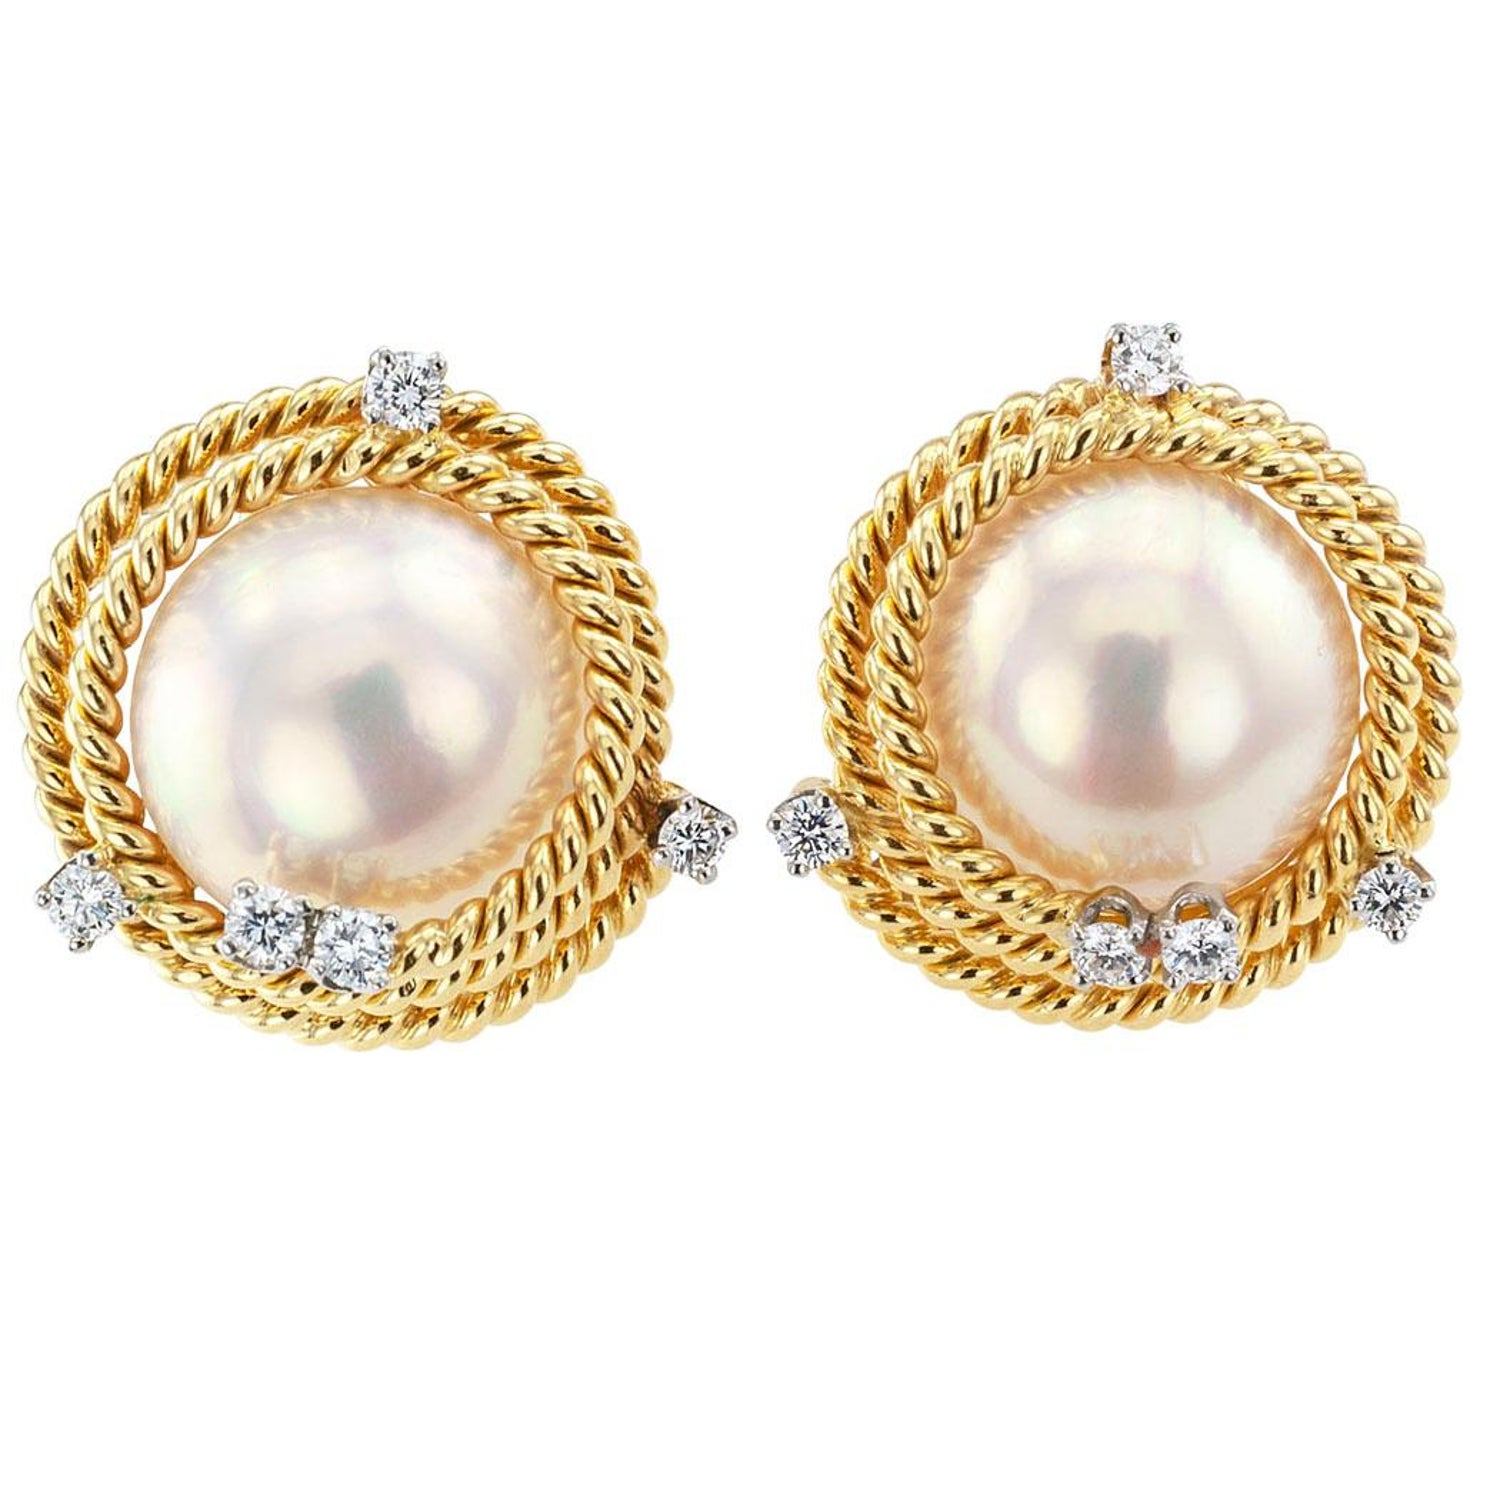 f69a951b1 Tiffany and Co. Schlumberger Mabe Pearl Diamond Ear Clips at 1stdibs